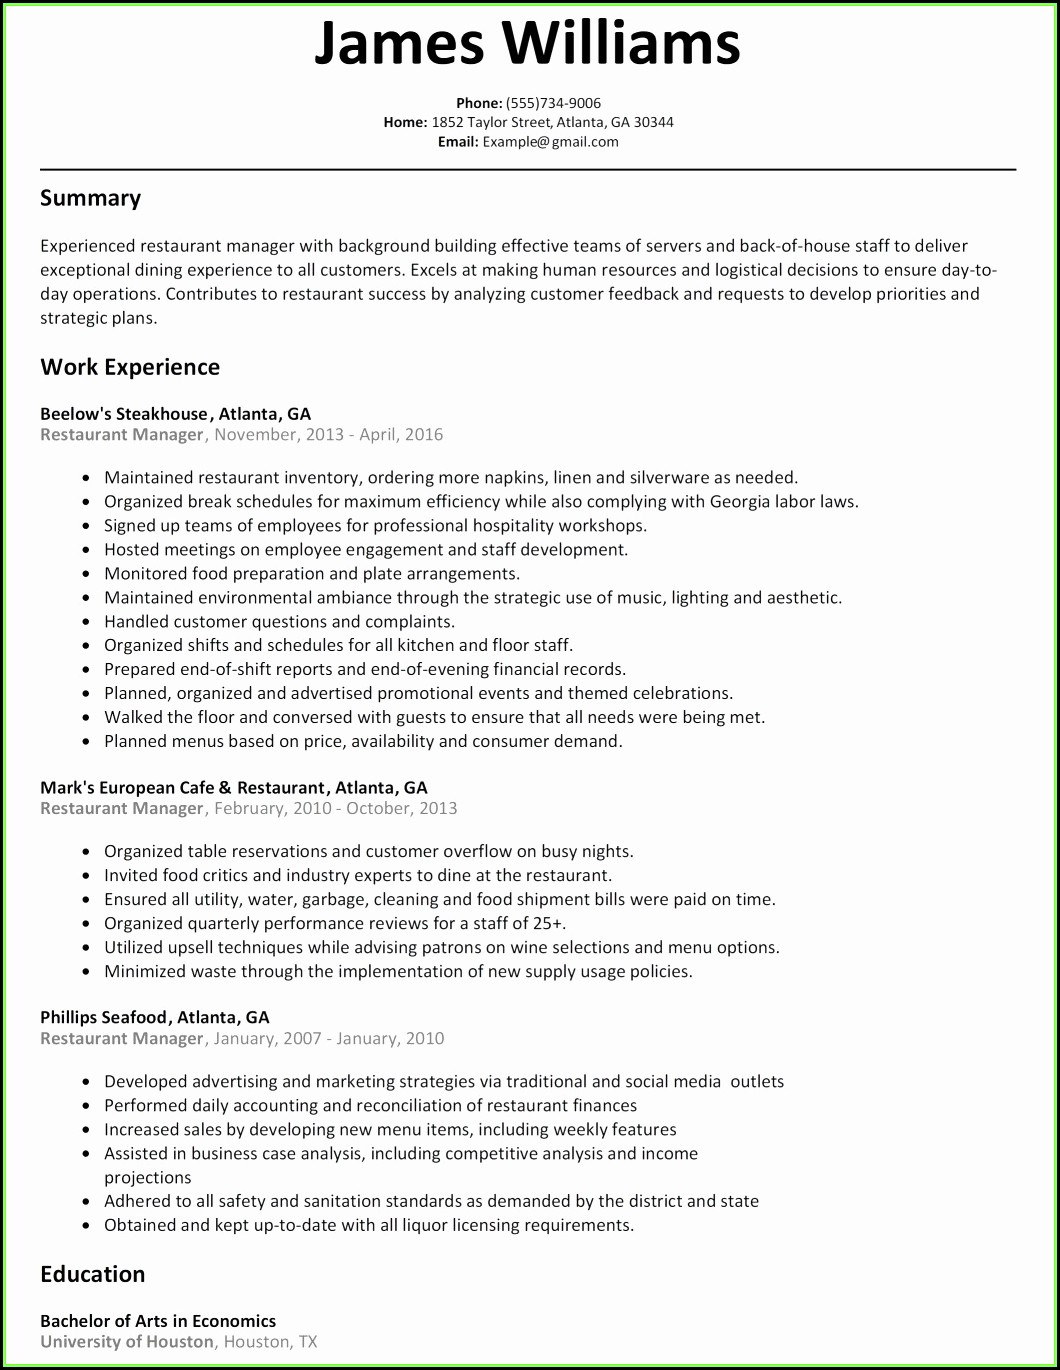 Human Resources Business Partner Resume Templates